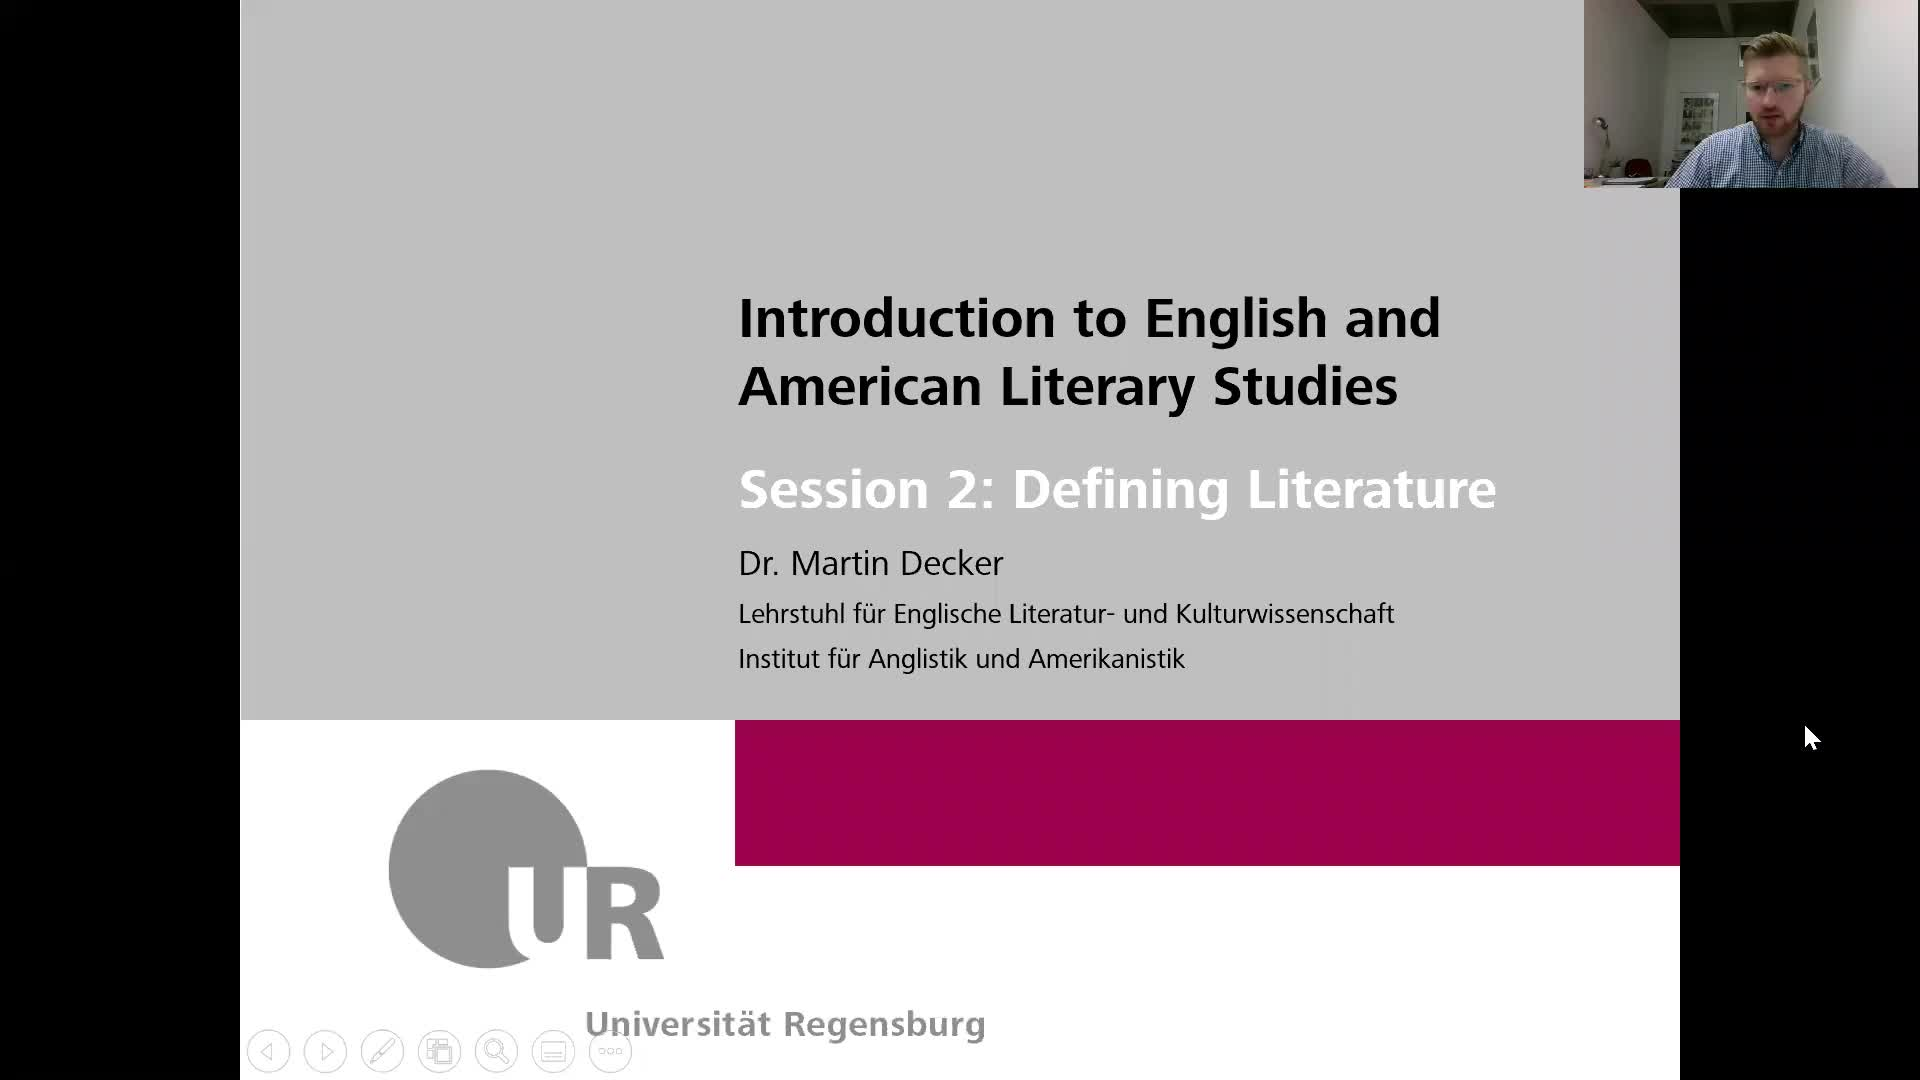 Introduction to English and American Literary Studies - LECTURE - Session 2